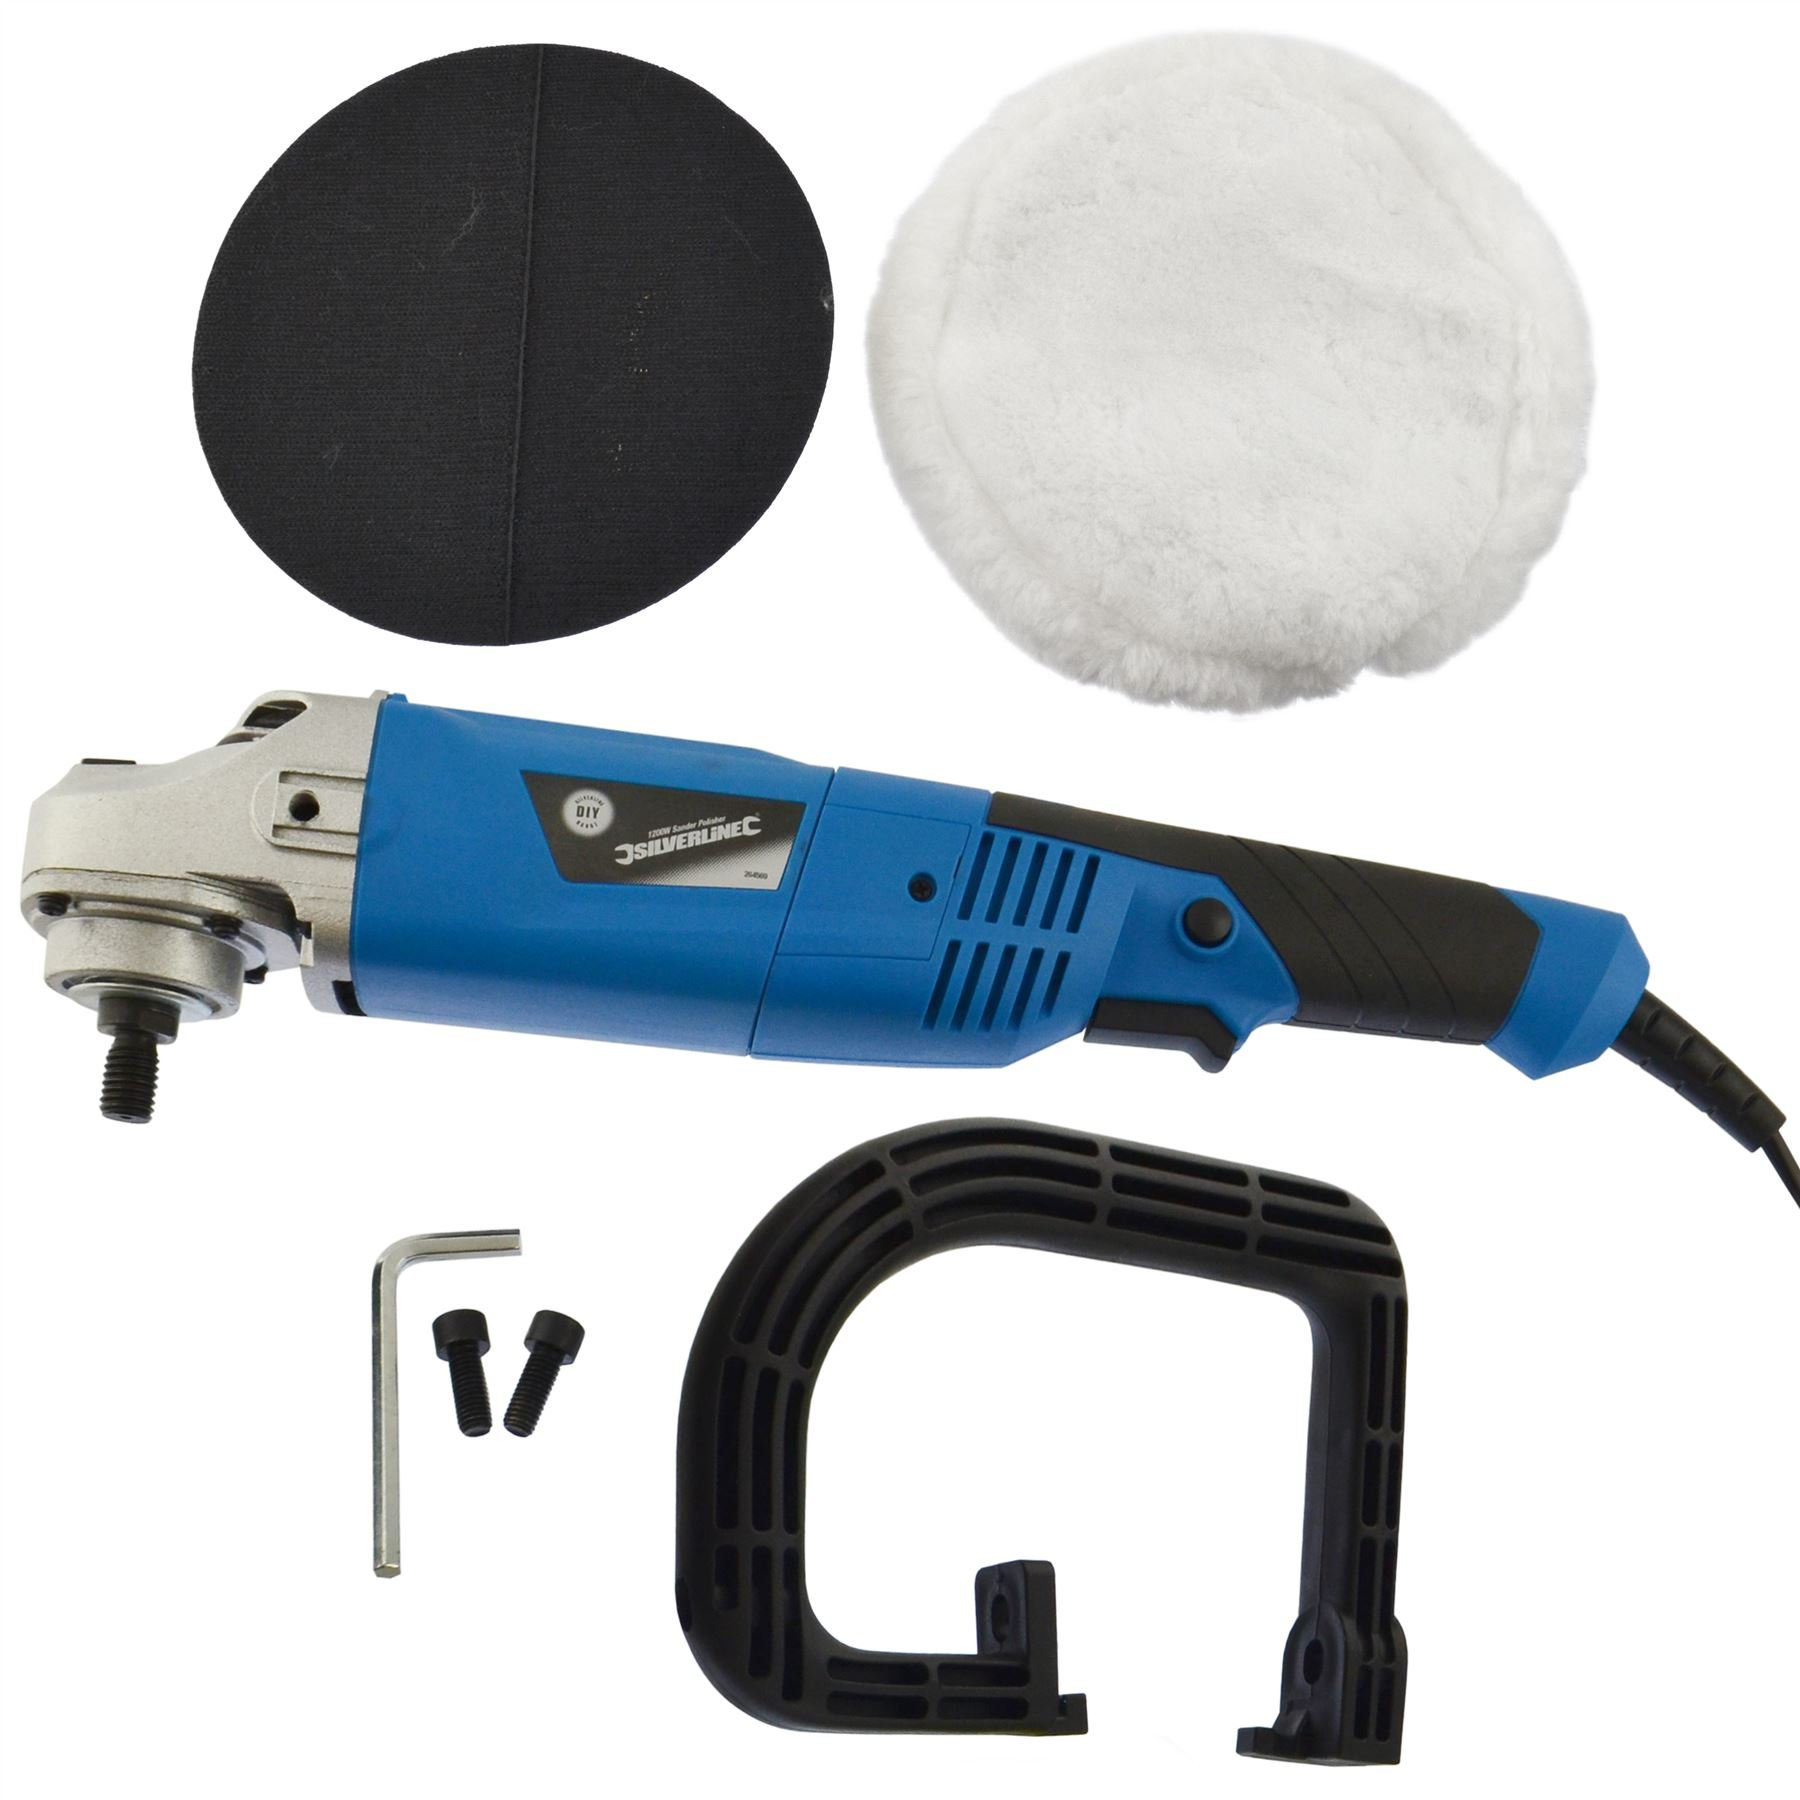 180mm Machine Polisher 1200W Electric Variable Speed Rotary Car Buffer Mop Kit by A B Tools (Image #2)